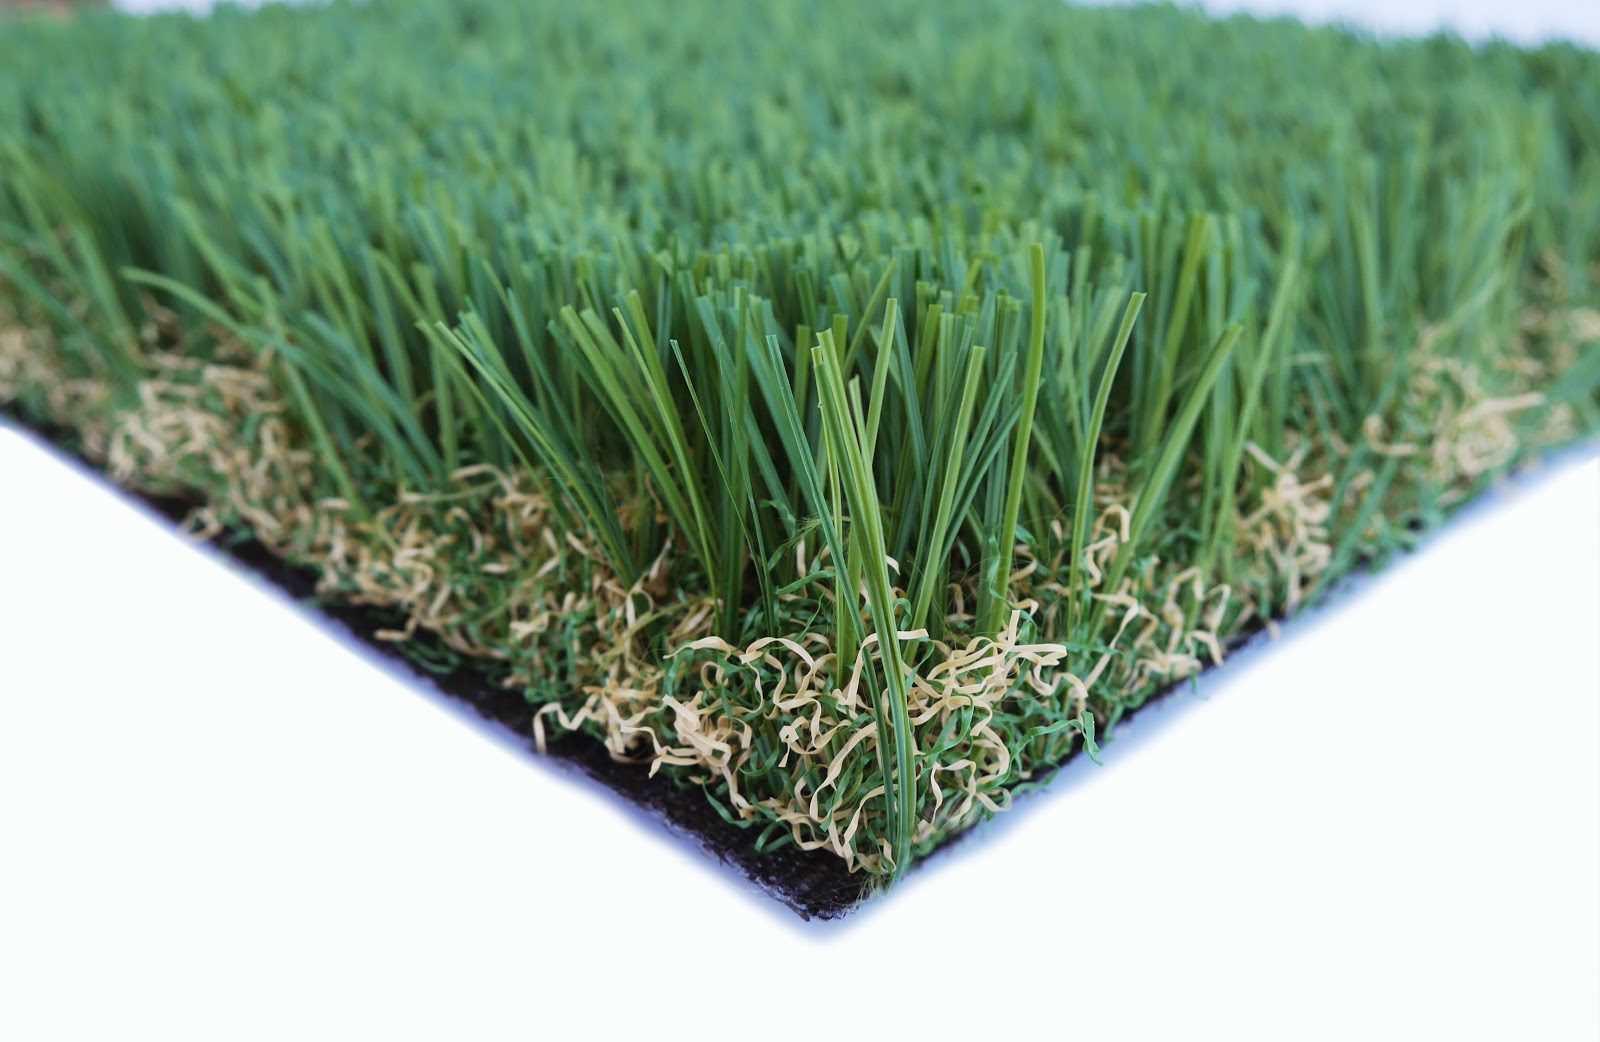 artificial lawn samples by Courts and Greens in Bakersfield